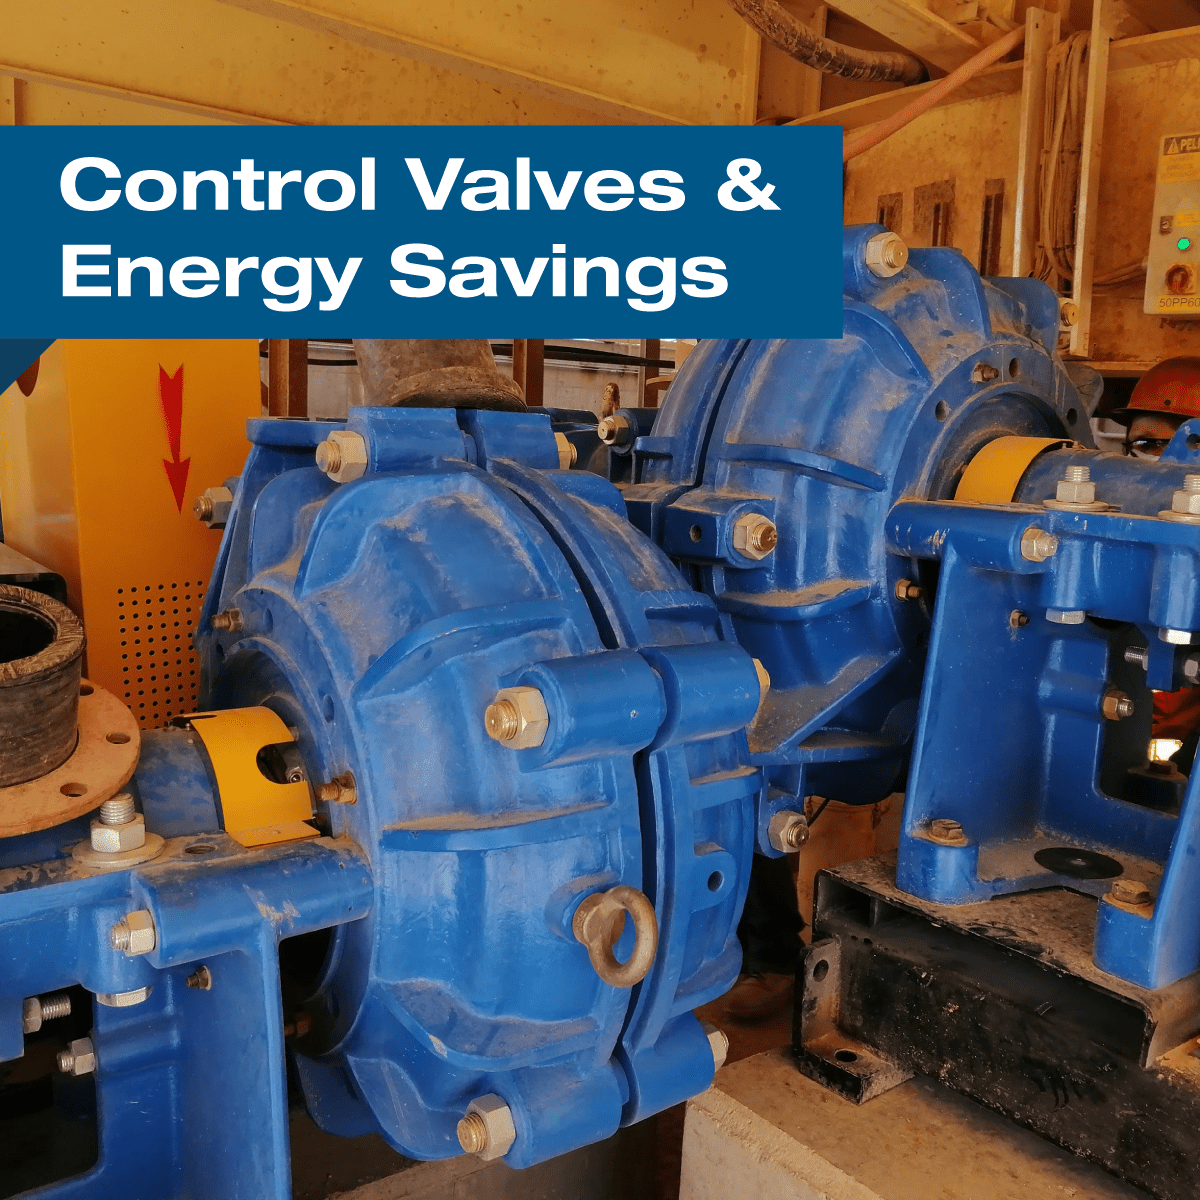 Energy Savings Opportunities in Control Valves, Reduced Energy Consumption